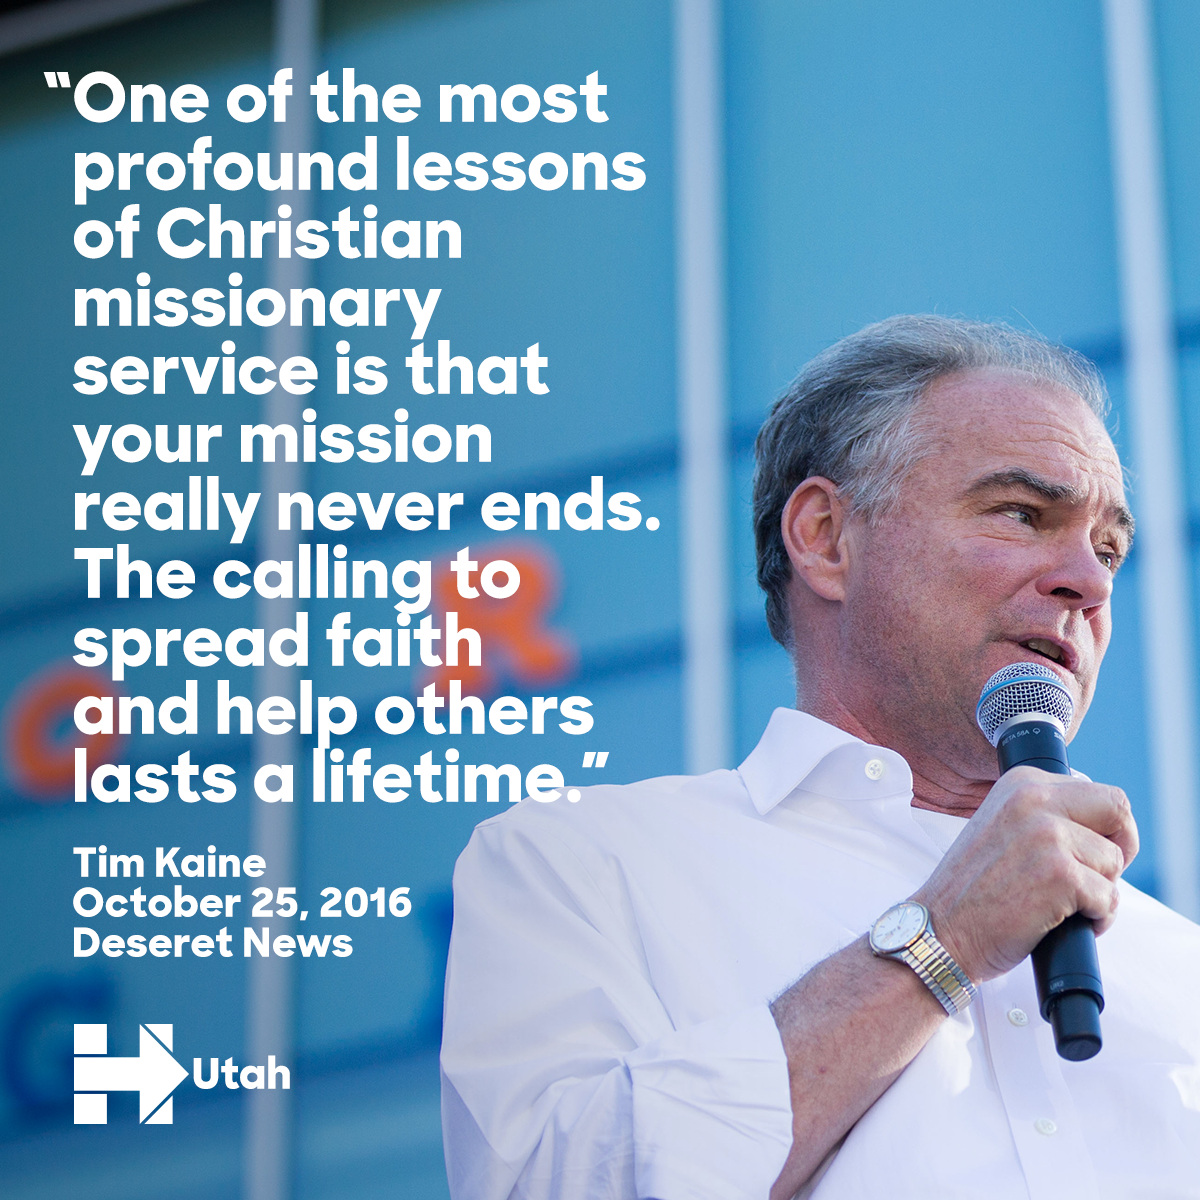 Tim_Kaine_mission_never_ends.png